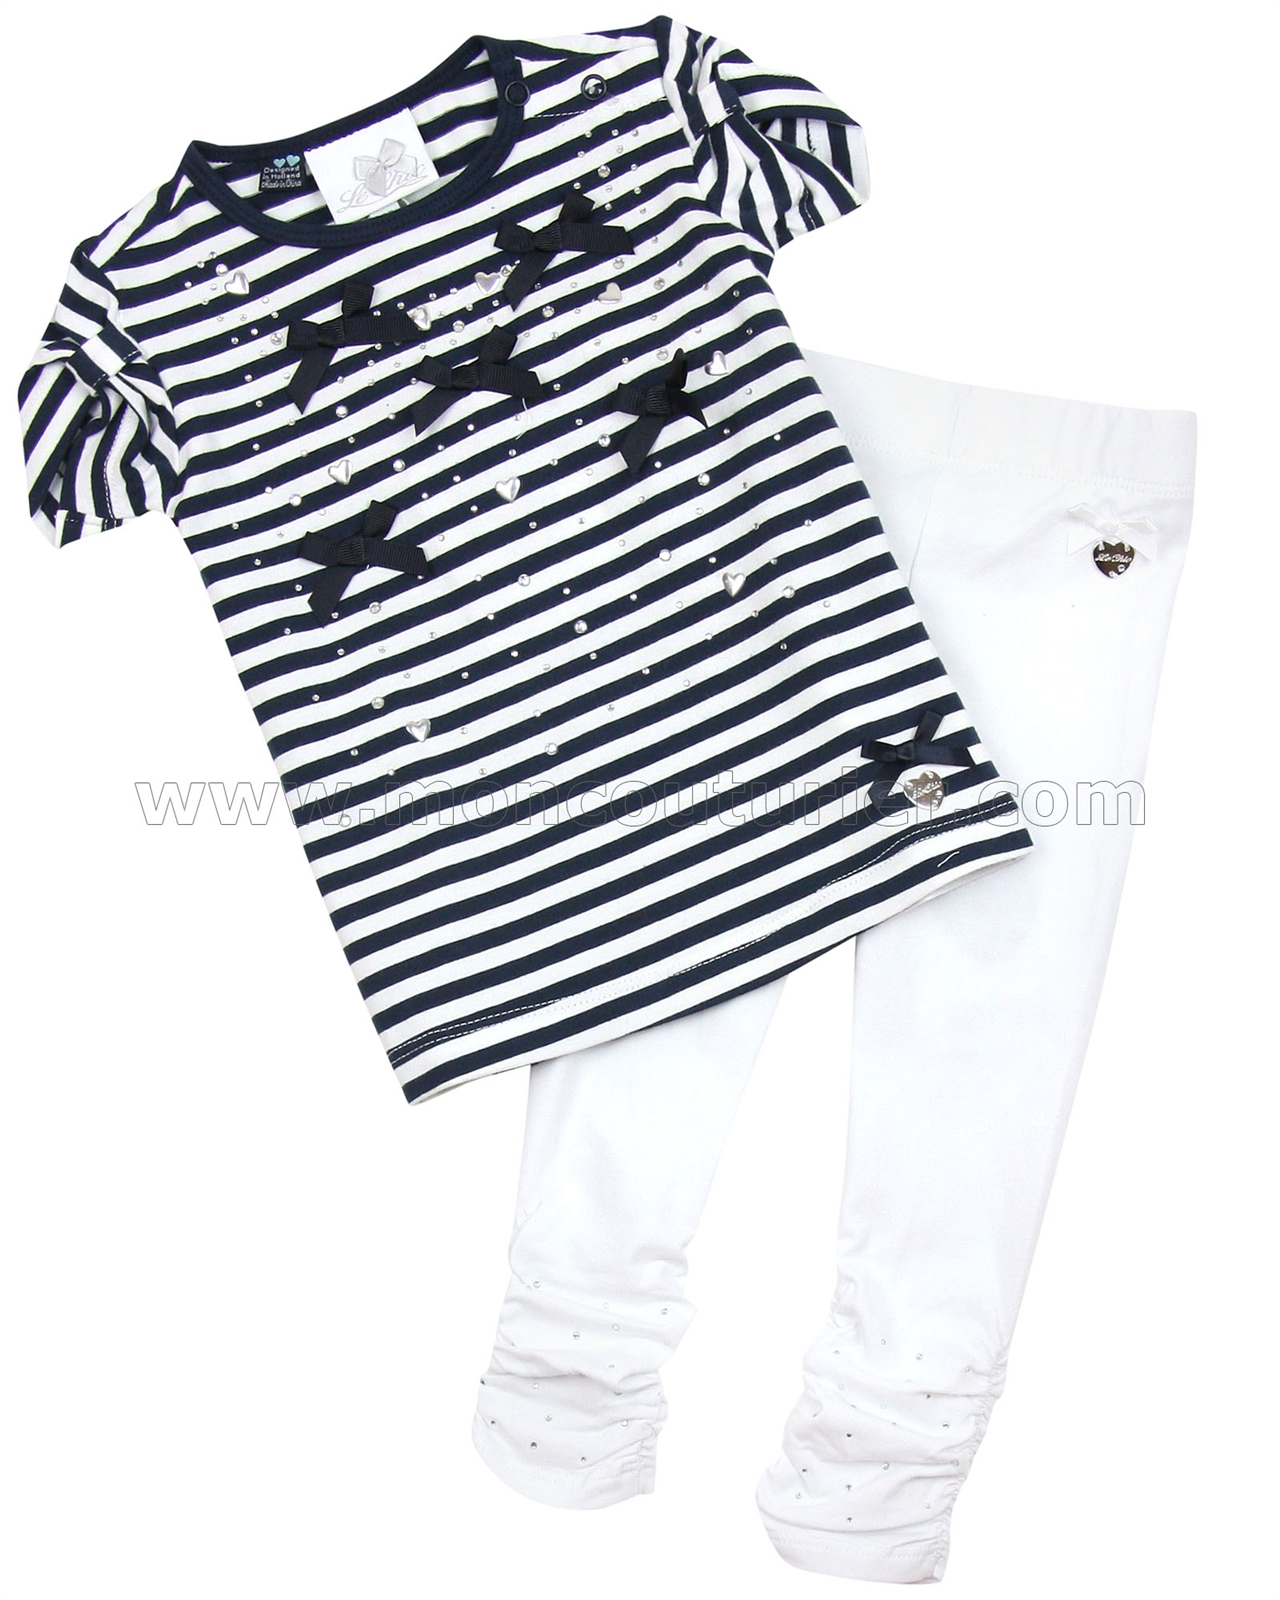 dbe762fbd Le Chic Baby Girl T-shirt with Bows and Leggings - Le Chic - Le Chic ...